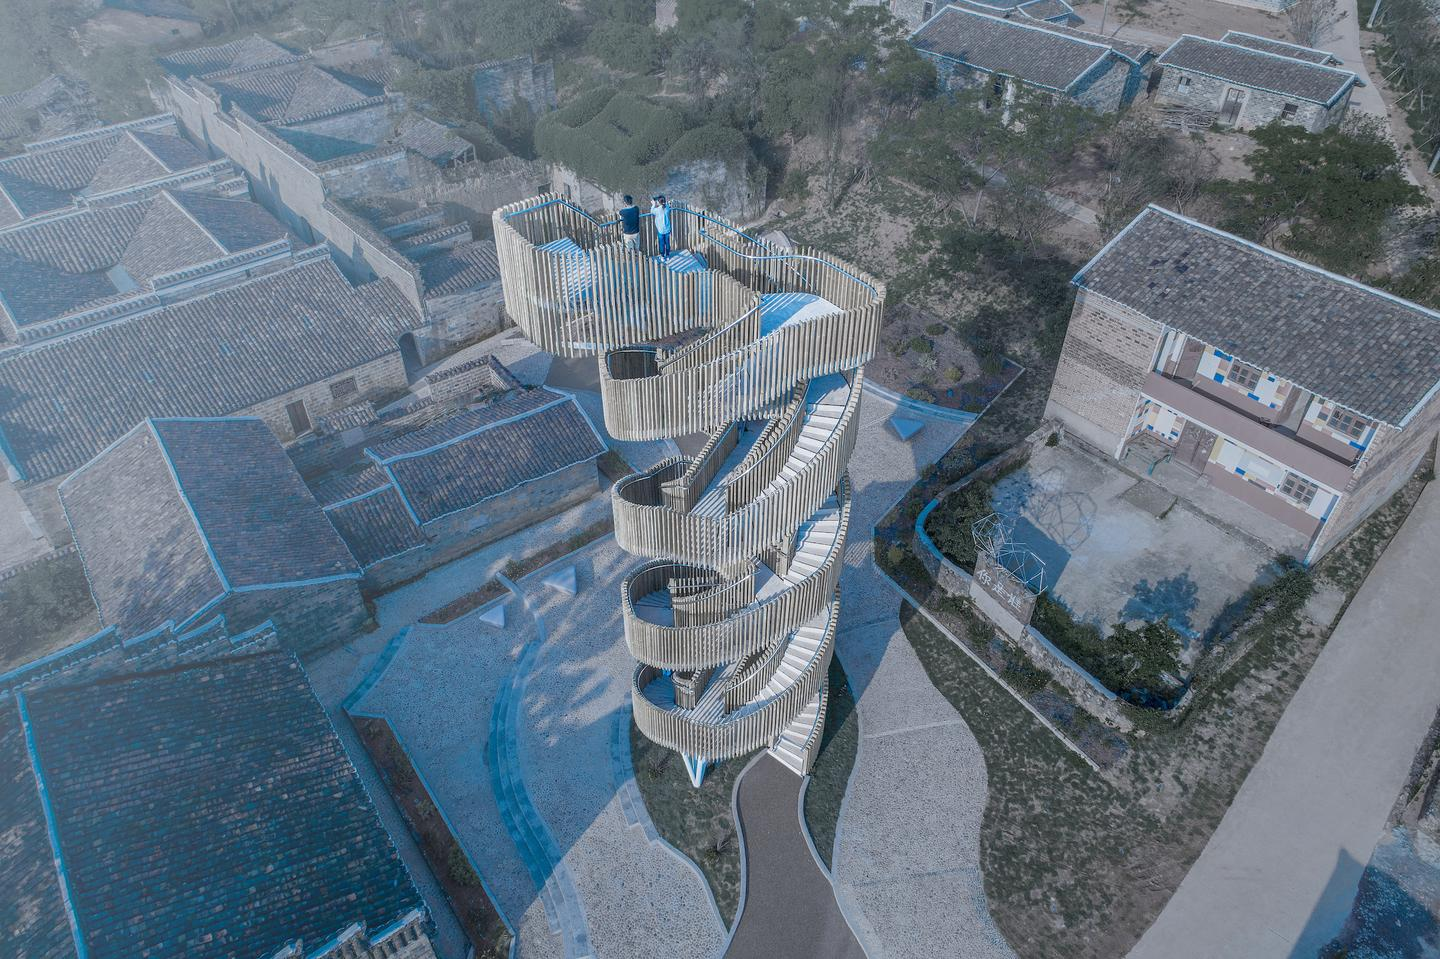 Dafang Creative Village features a watchtower with two intertwining staircases